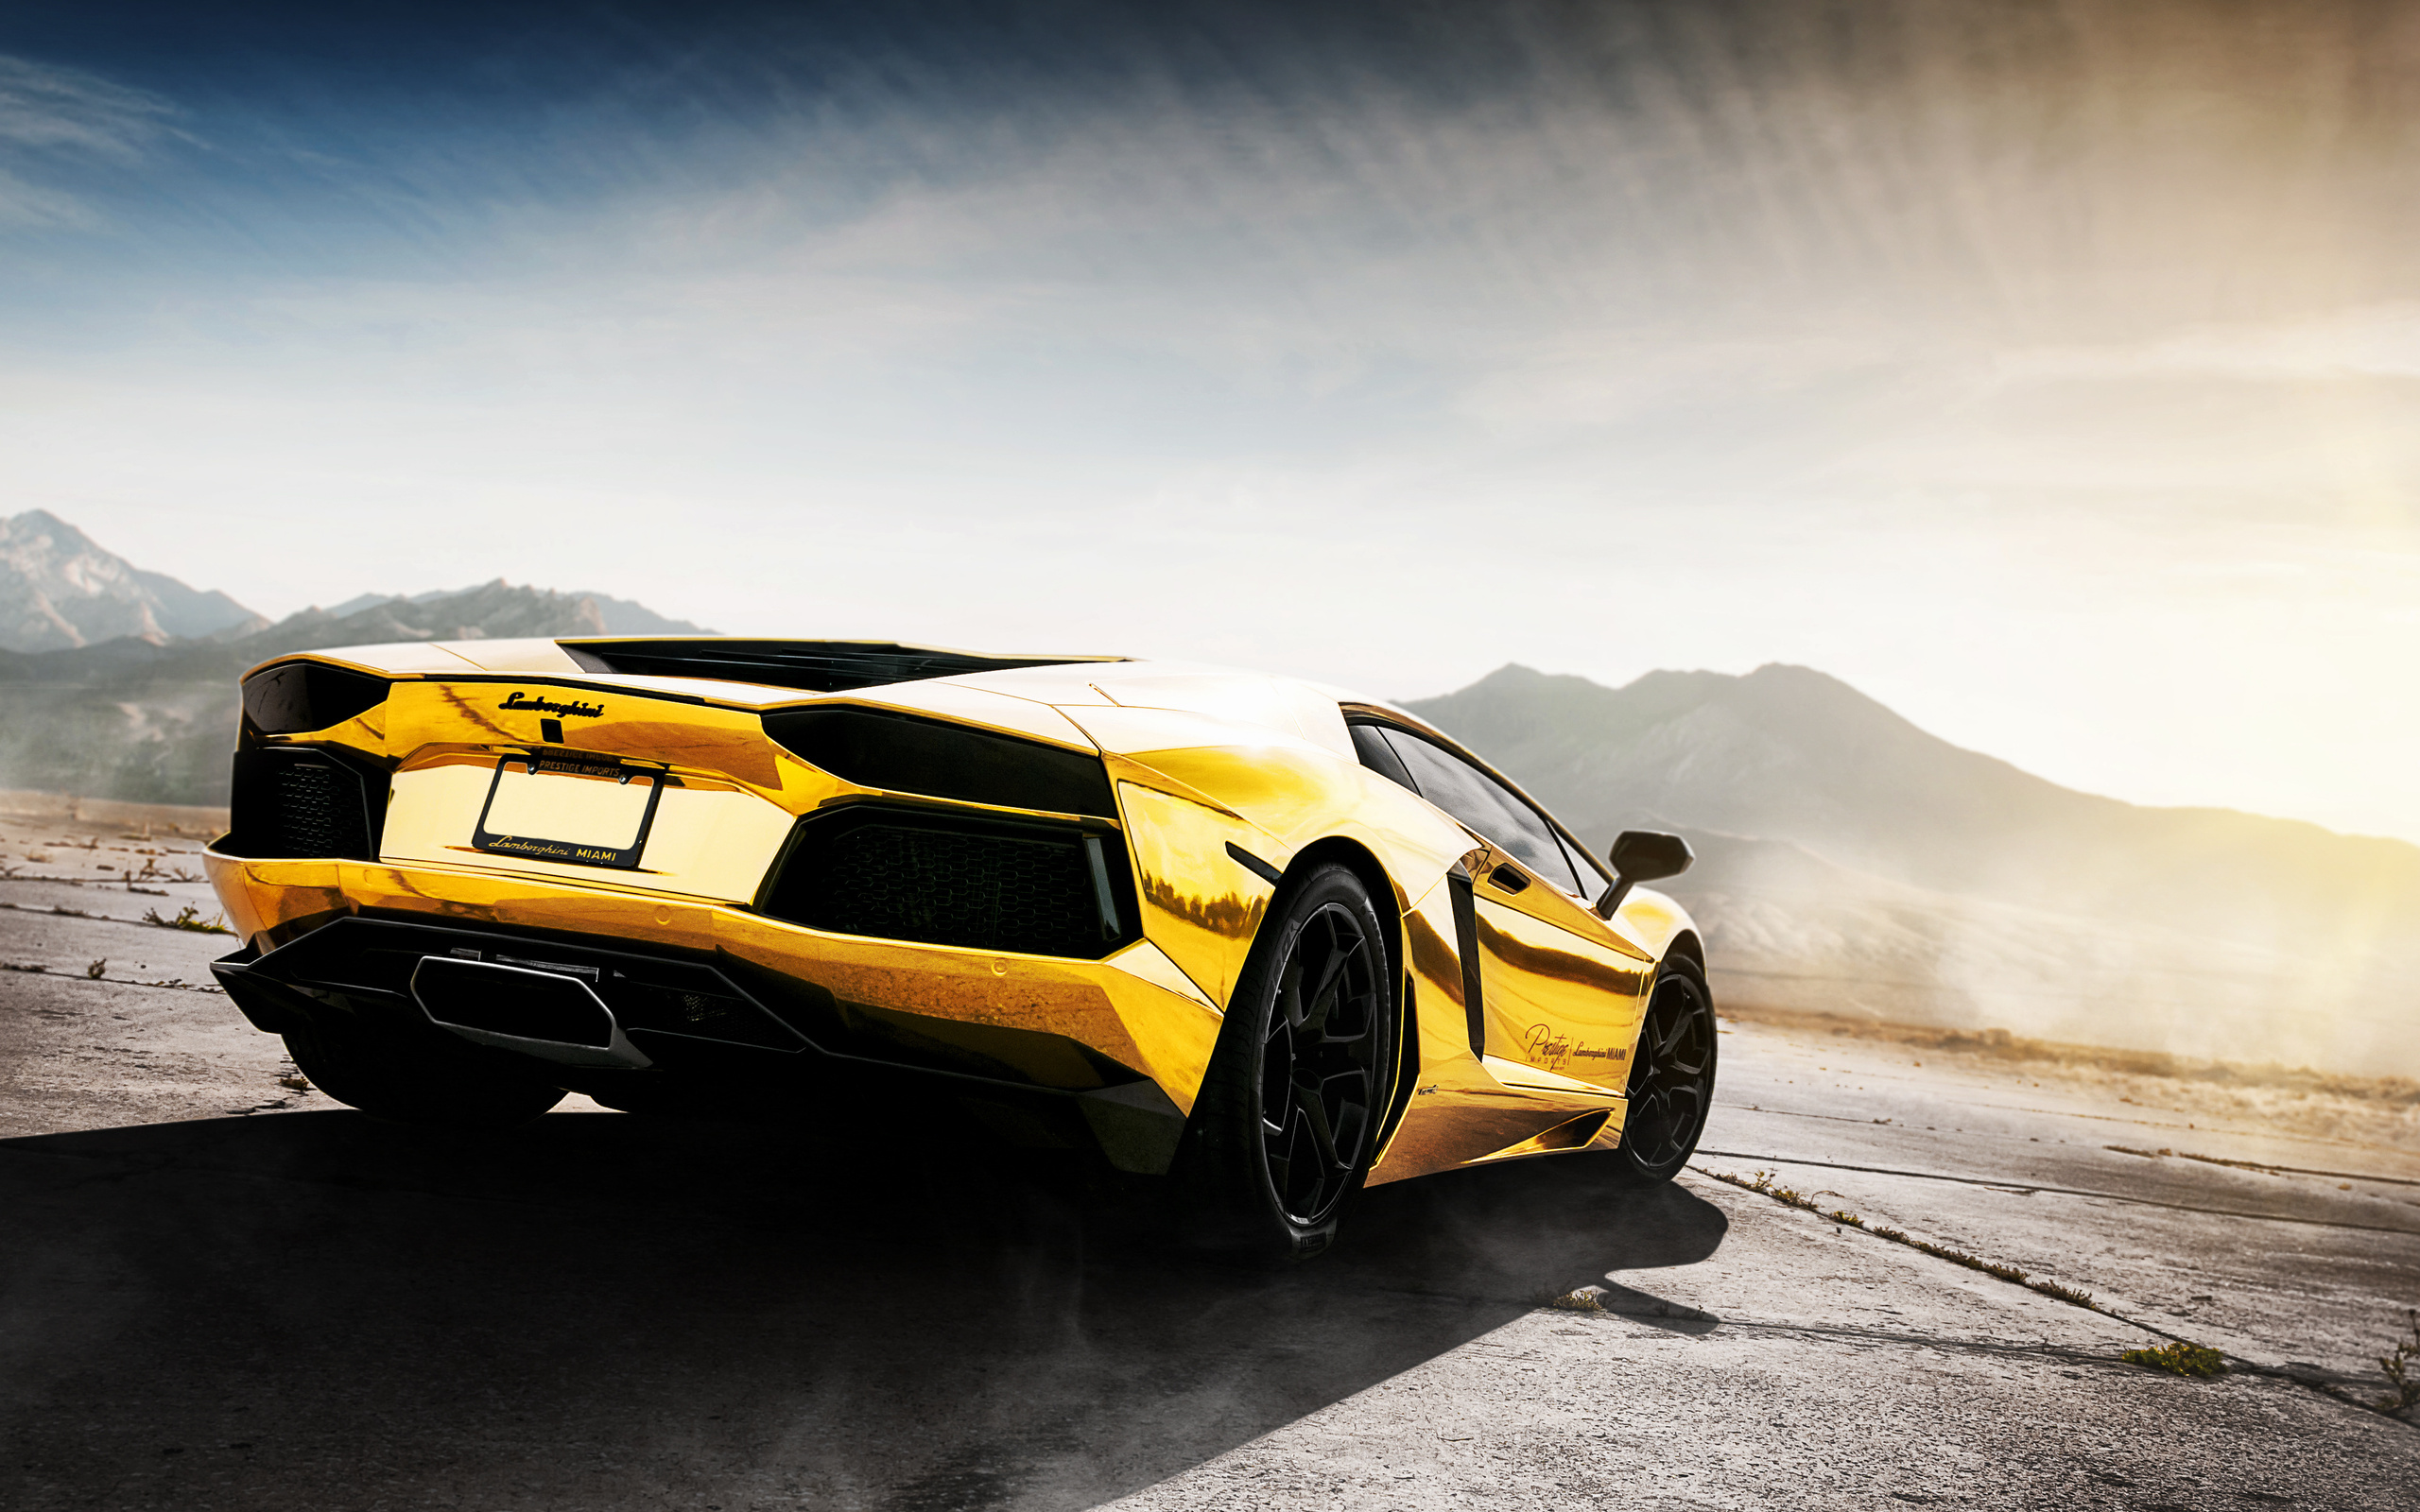 Gold Car Wallpapers: Black And Gold Exotic Cars 34 Wide Wallpaper